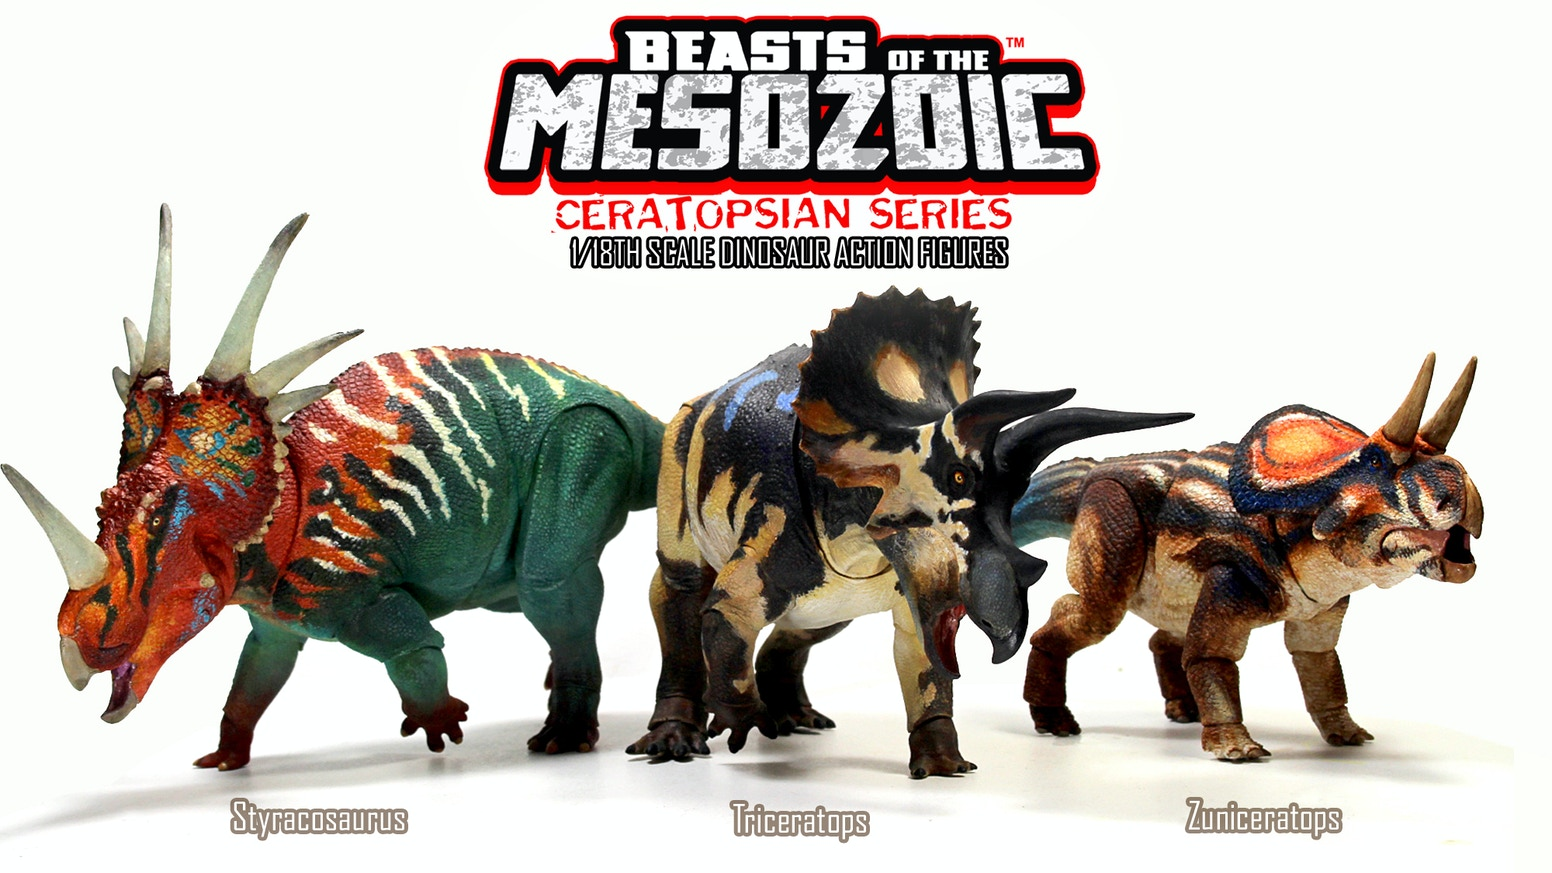 Beasts of the Mesozoic: Ceratopsians- a line of scientifically accurate dinosaur action figures with elaborate detail and articulation (Pre-order link below)